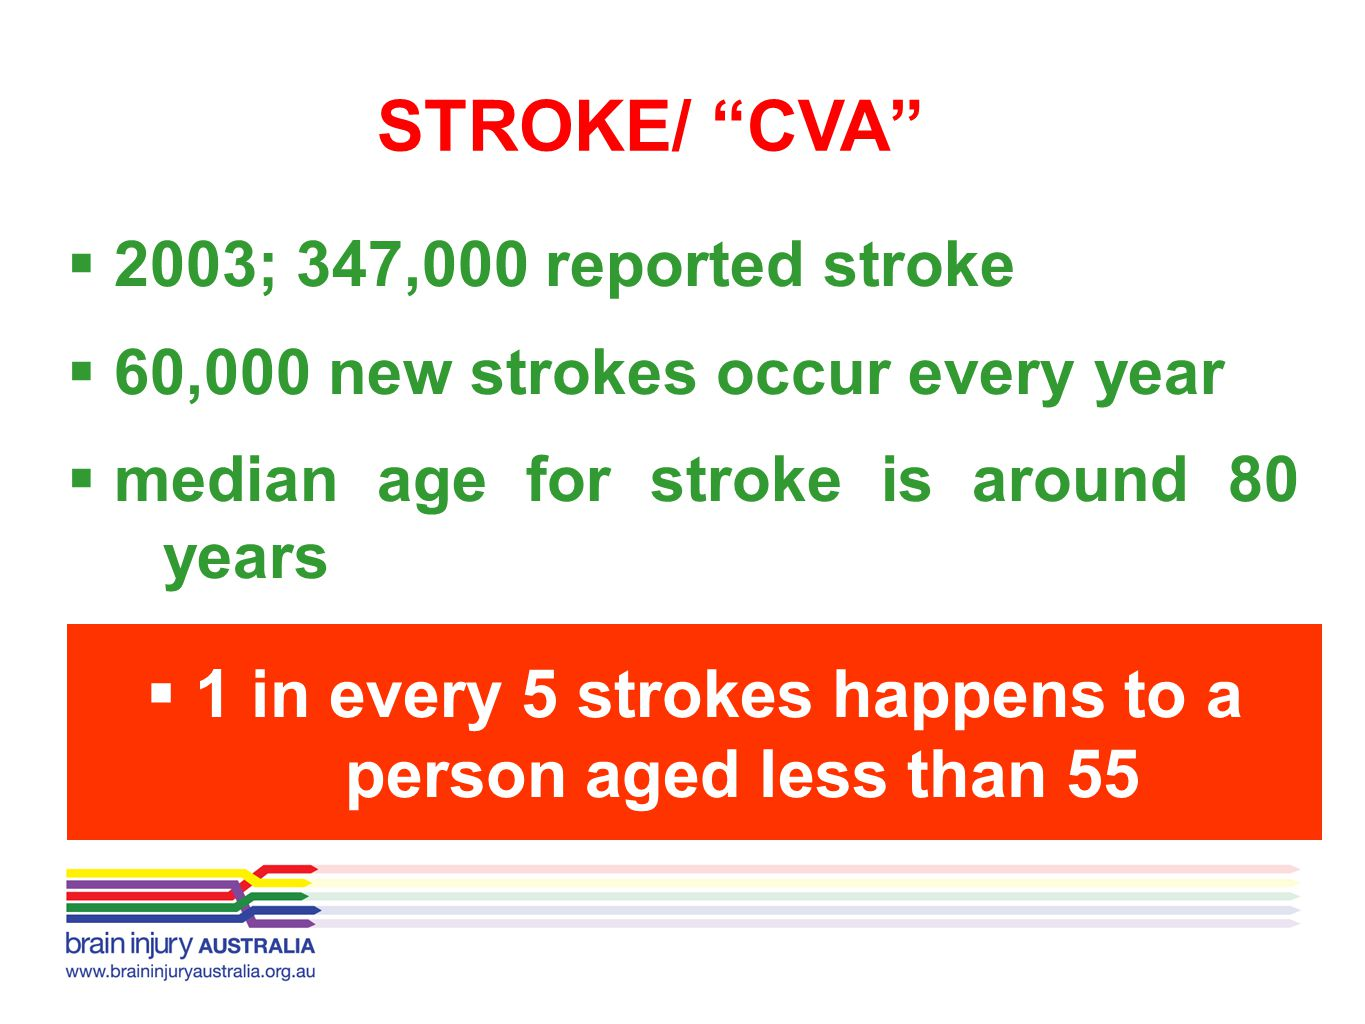 1 in every 5 strokes happens to a person aged less than 55